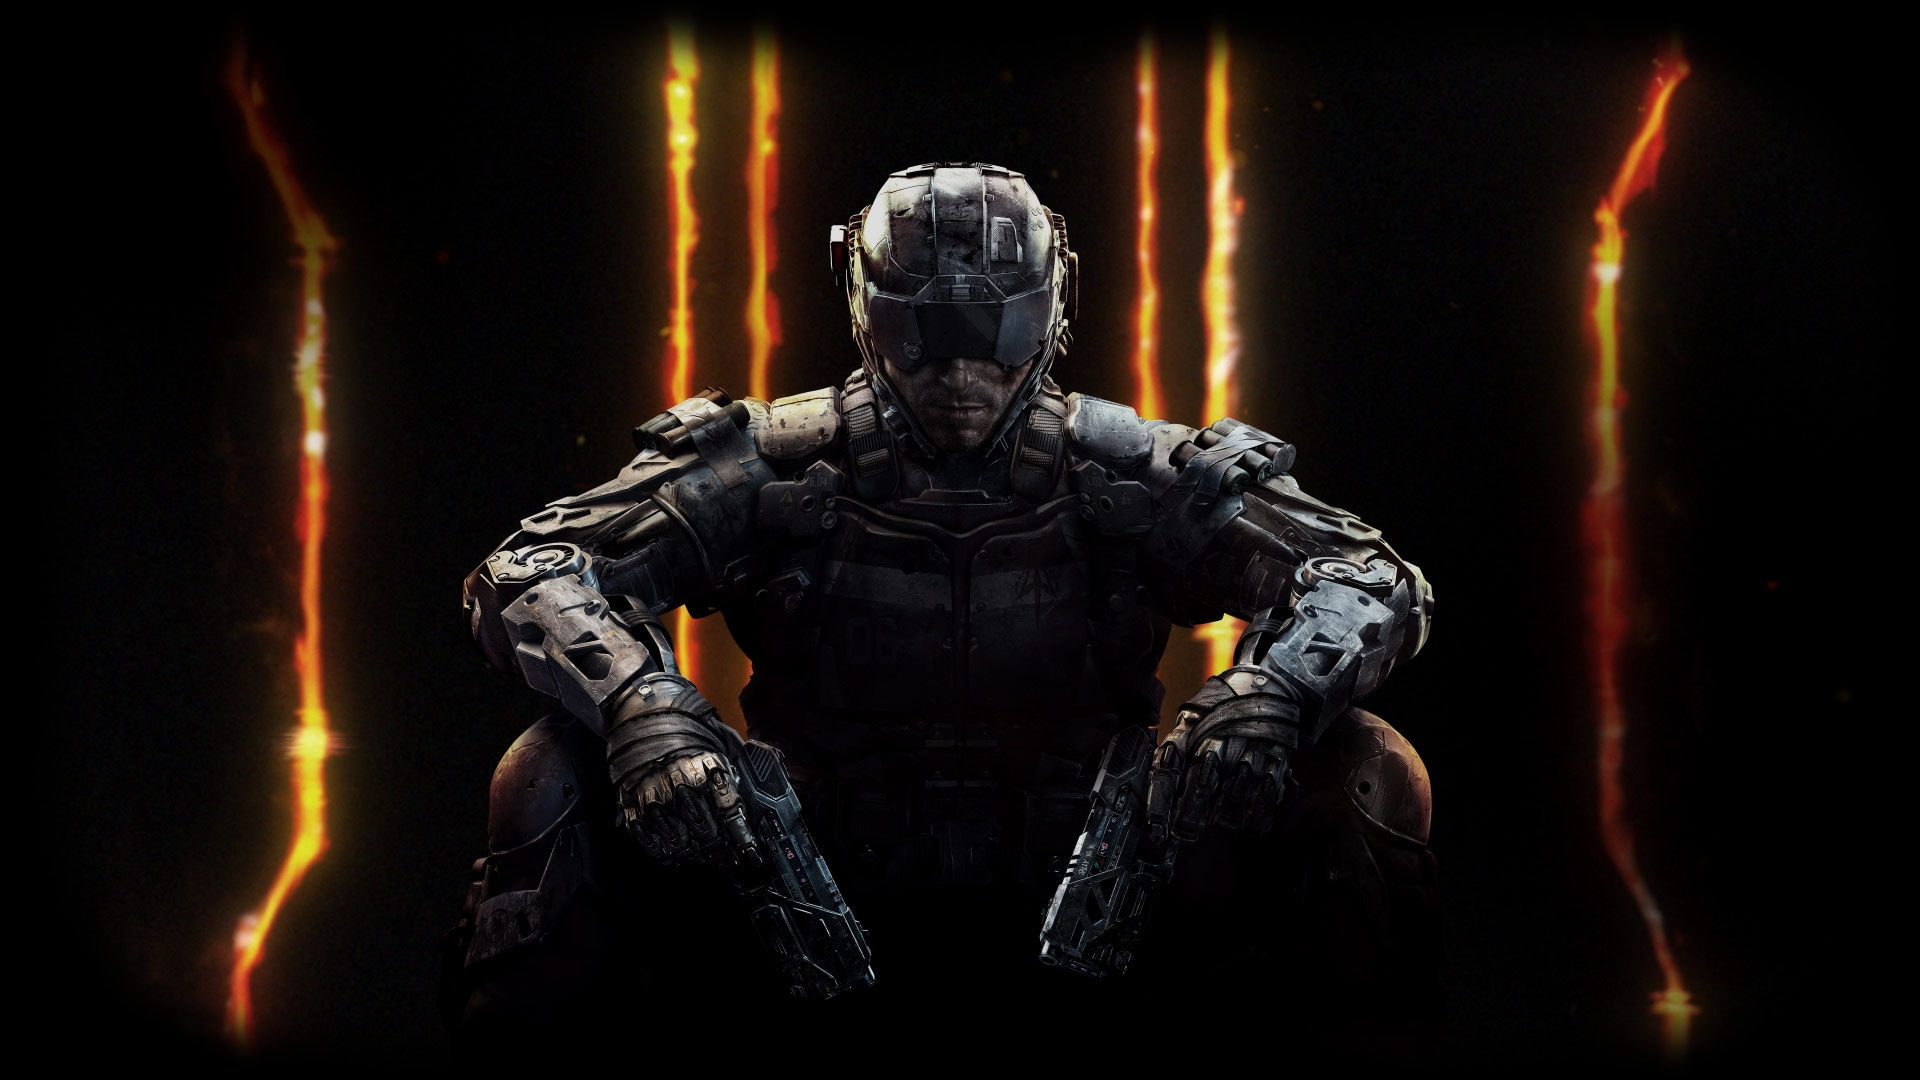 Rumor: Call of Duty 2018 Will Be Black Ops 4